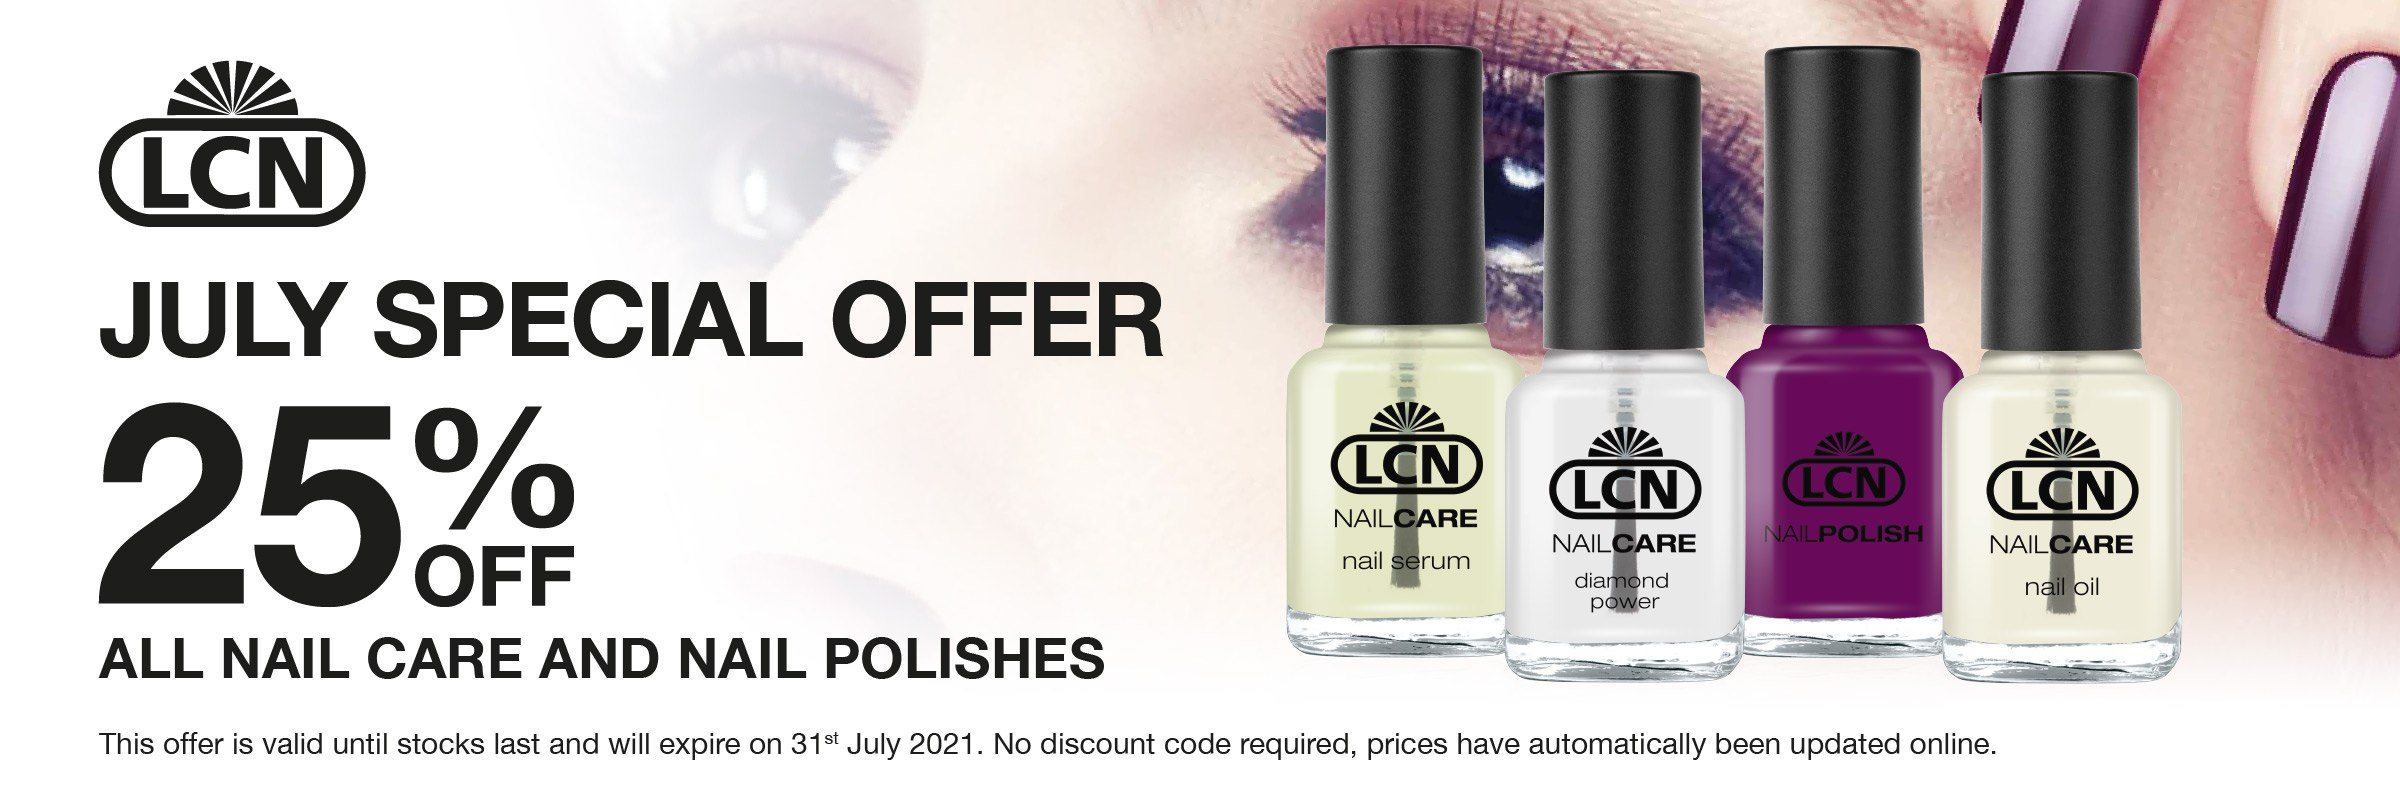 July Special Offers LCN